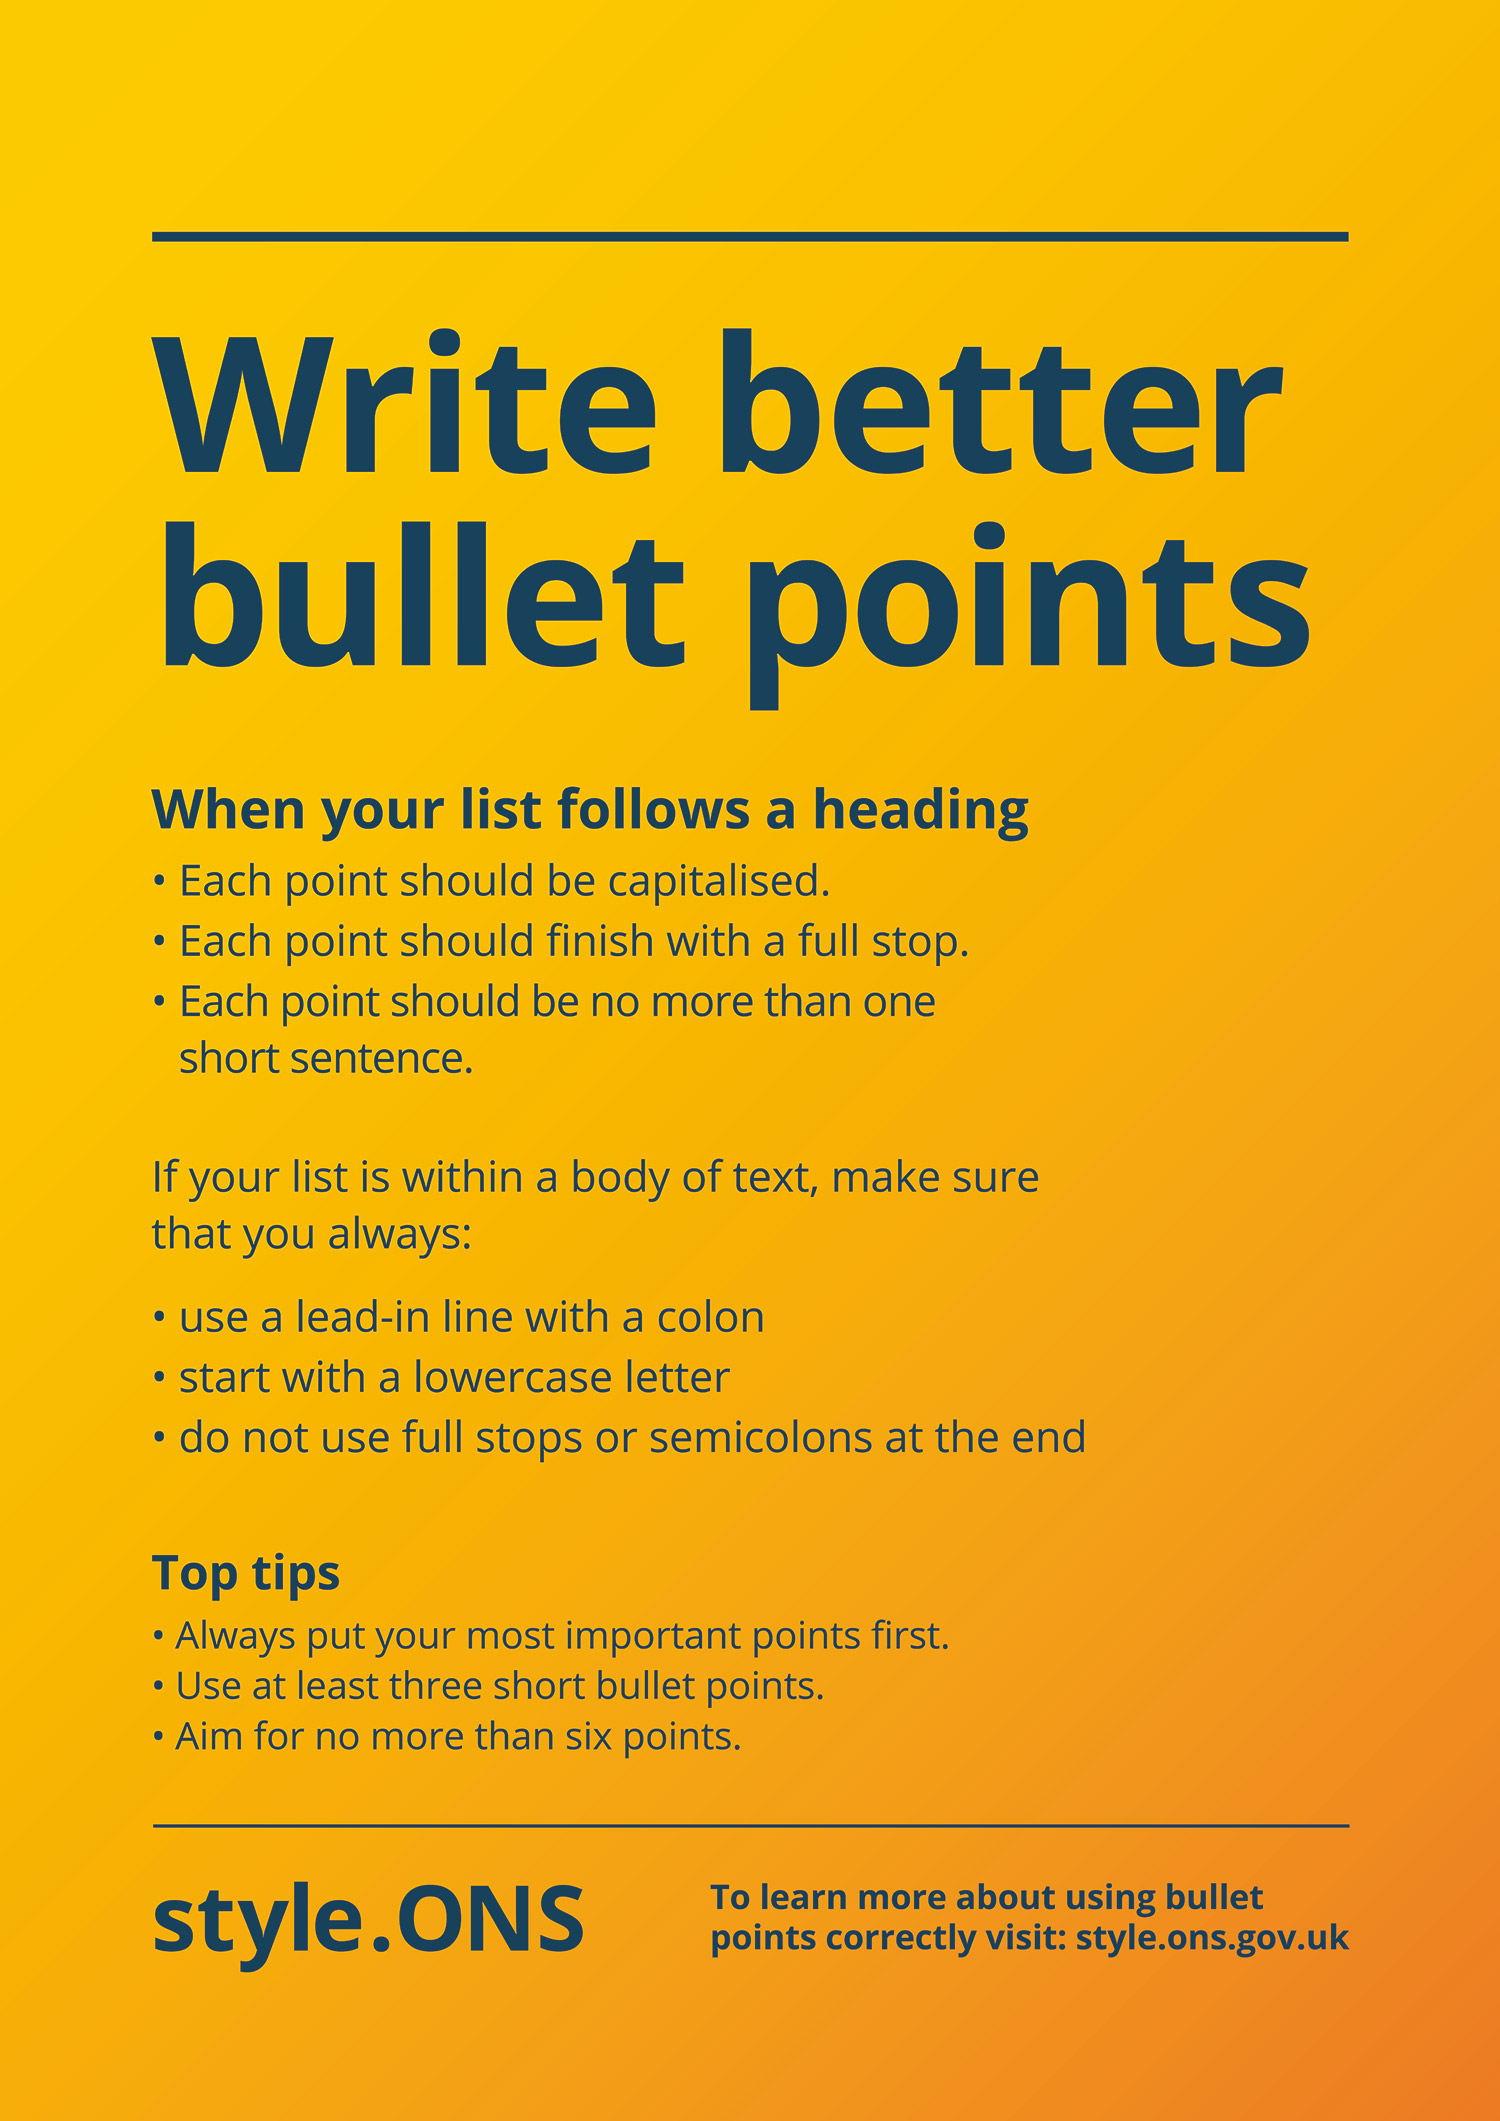 How to write better bullet points using ONS house style.